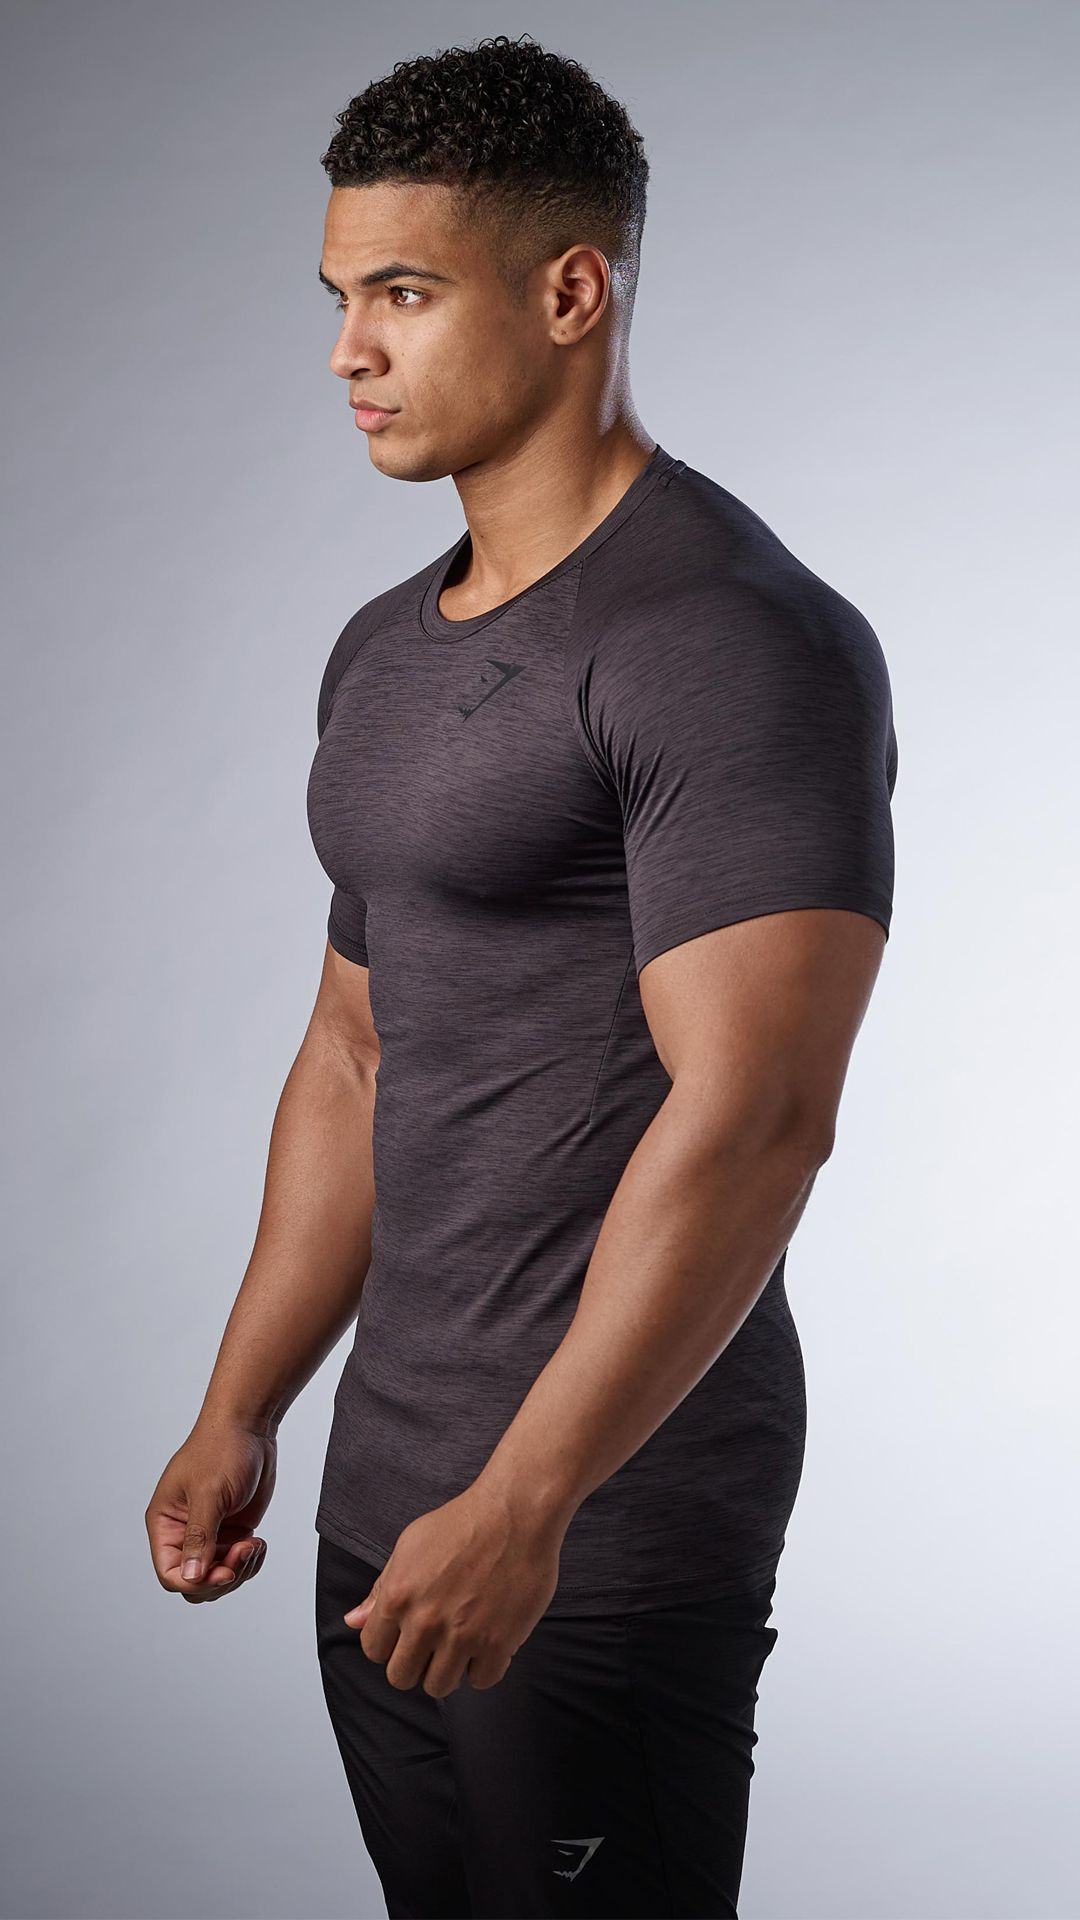 The Apex T-shirt makes extreme effort seem effortless. Now with a beautiful  soft blend fabric, the Apex T-shirt is a must have workout addition. 9b36d8312096